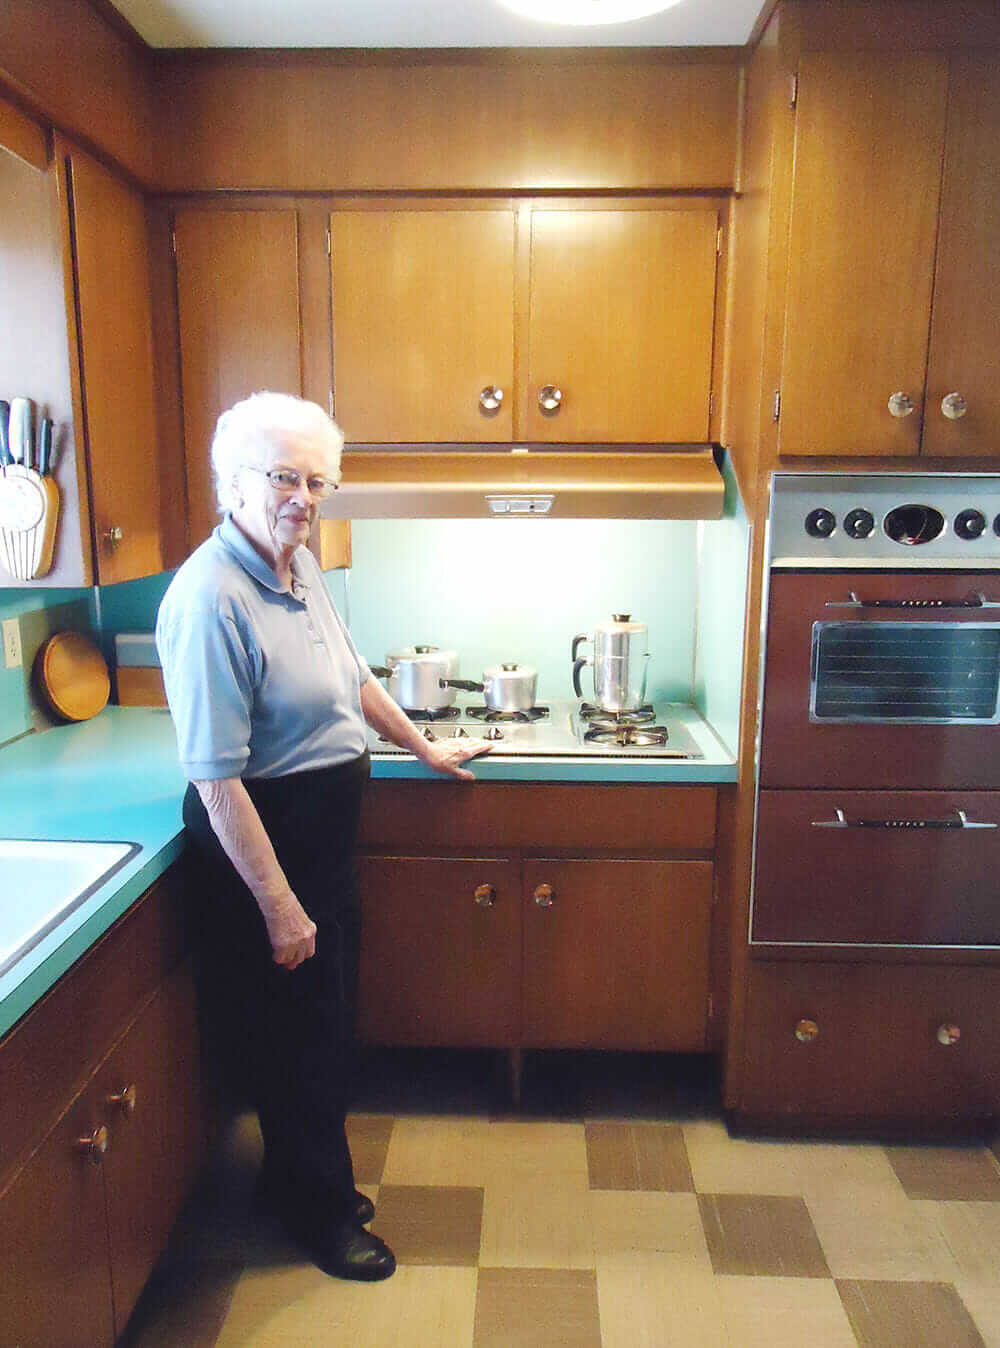 Uncategorized Kitchen Appliances Calgary 58 years in the same 1958 kitchen judys mom doreens midcentury kitchen